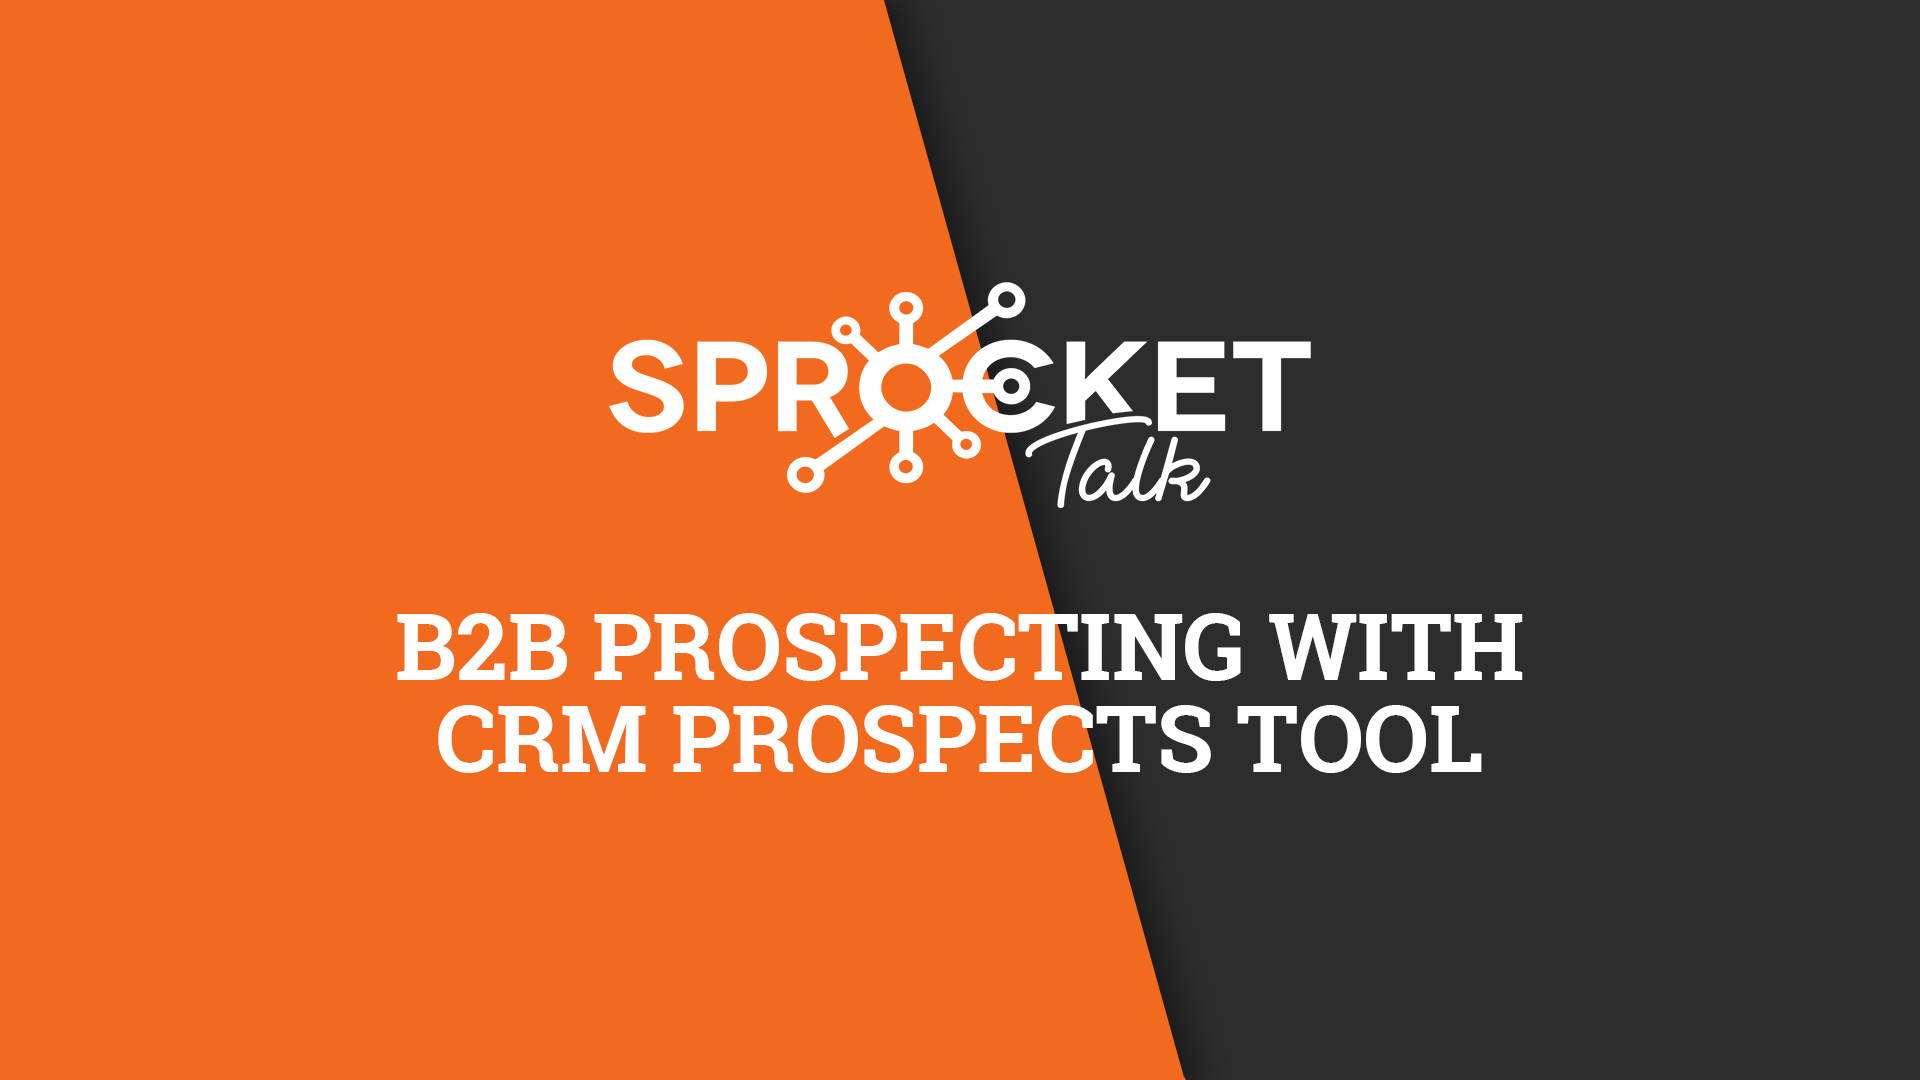 B2B Prospecting With CRM Prospects Tool